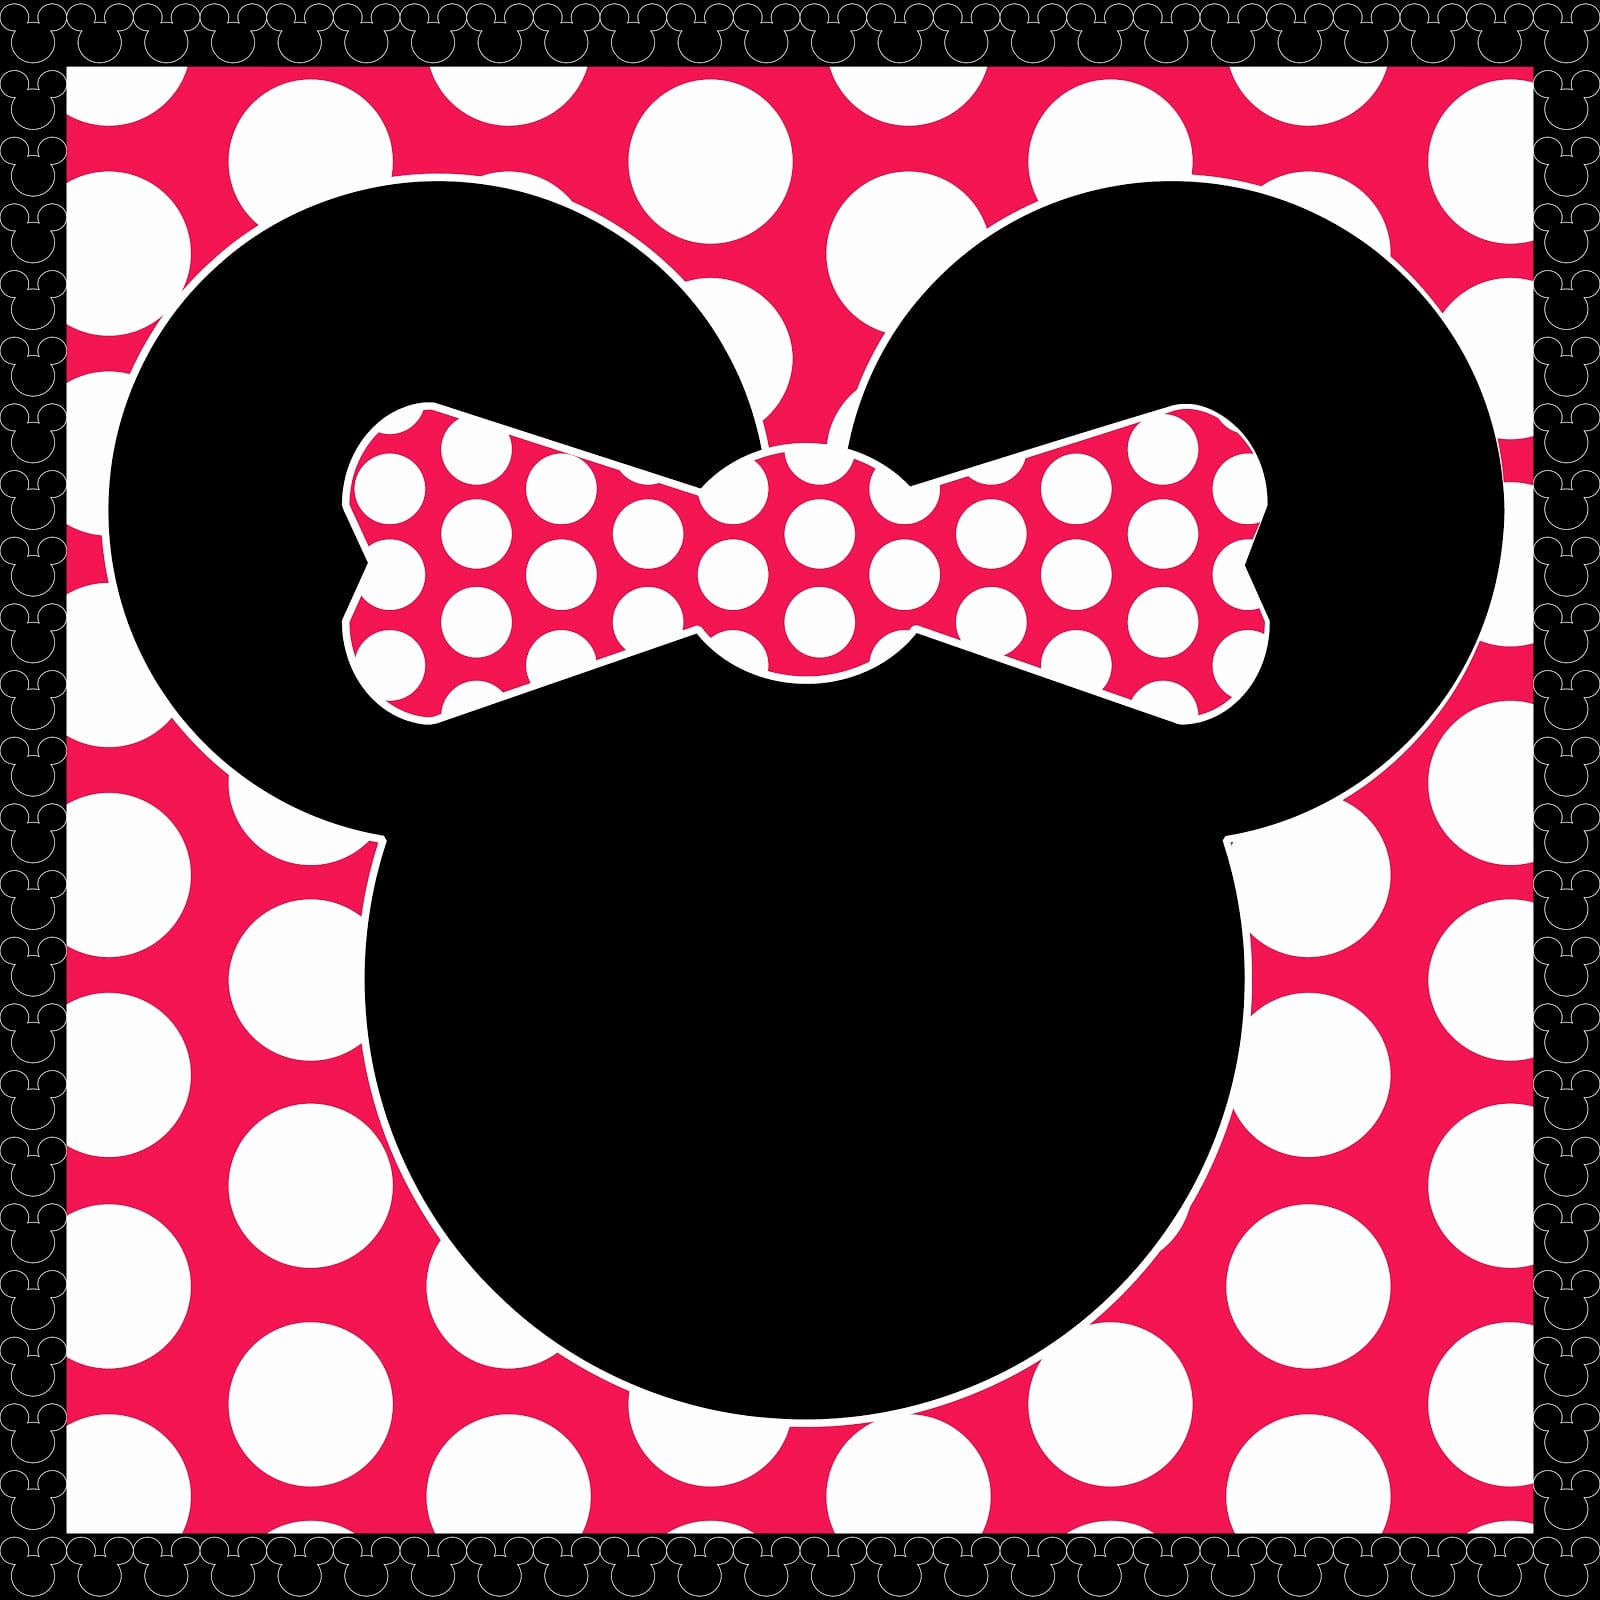 Minnie Mouse Invitation Template Fresh Minnie Mouse Invitation Printable Template